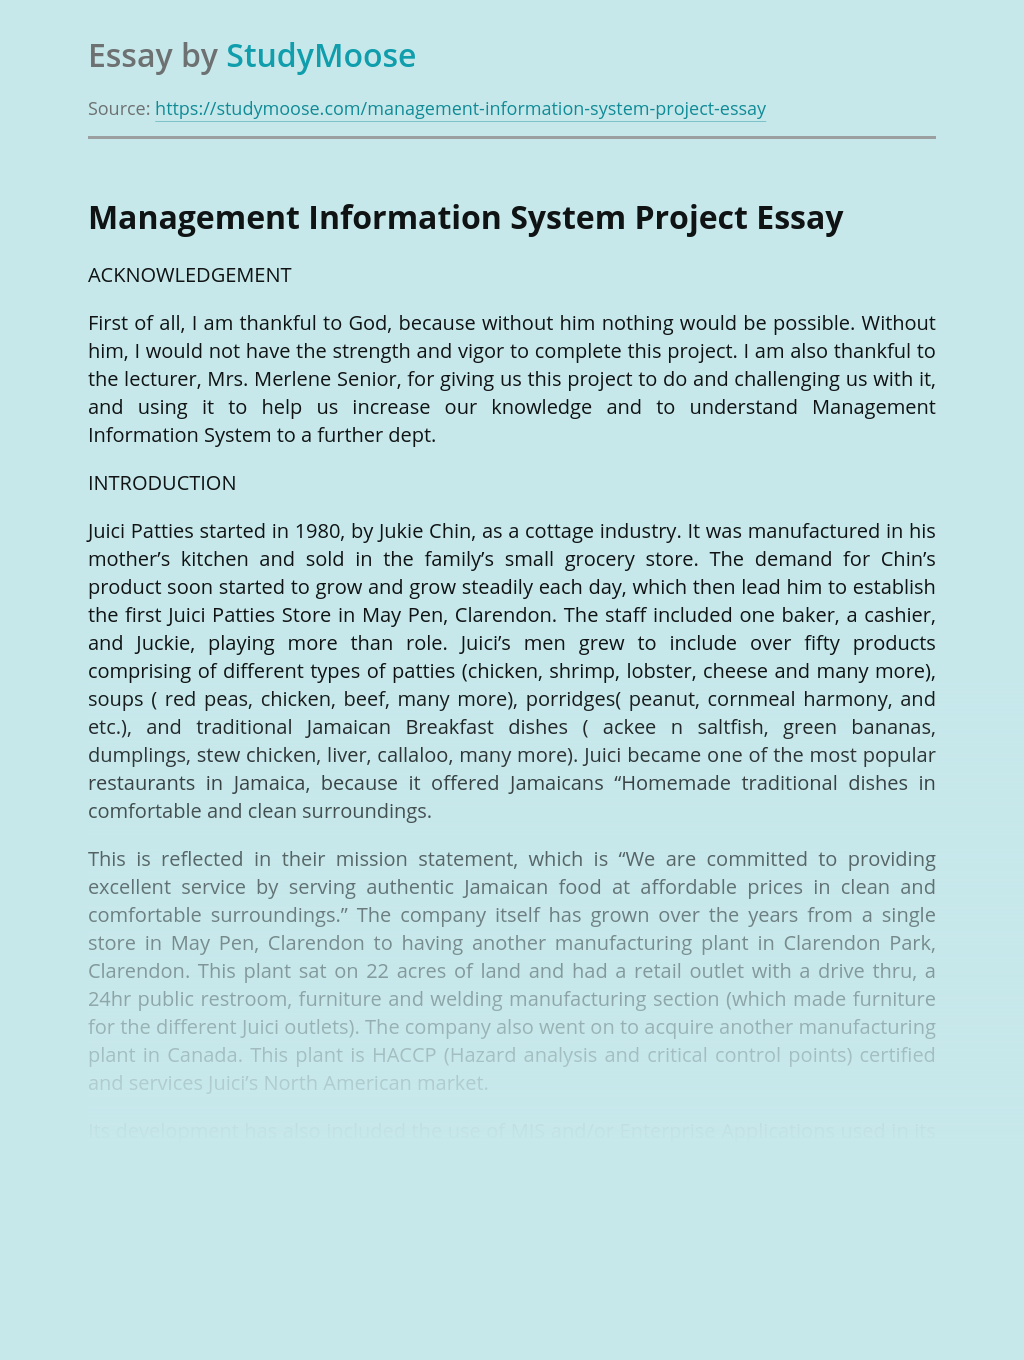 Management Information System Project